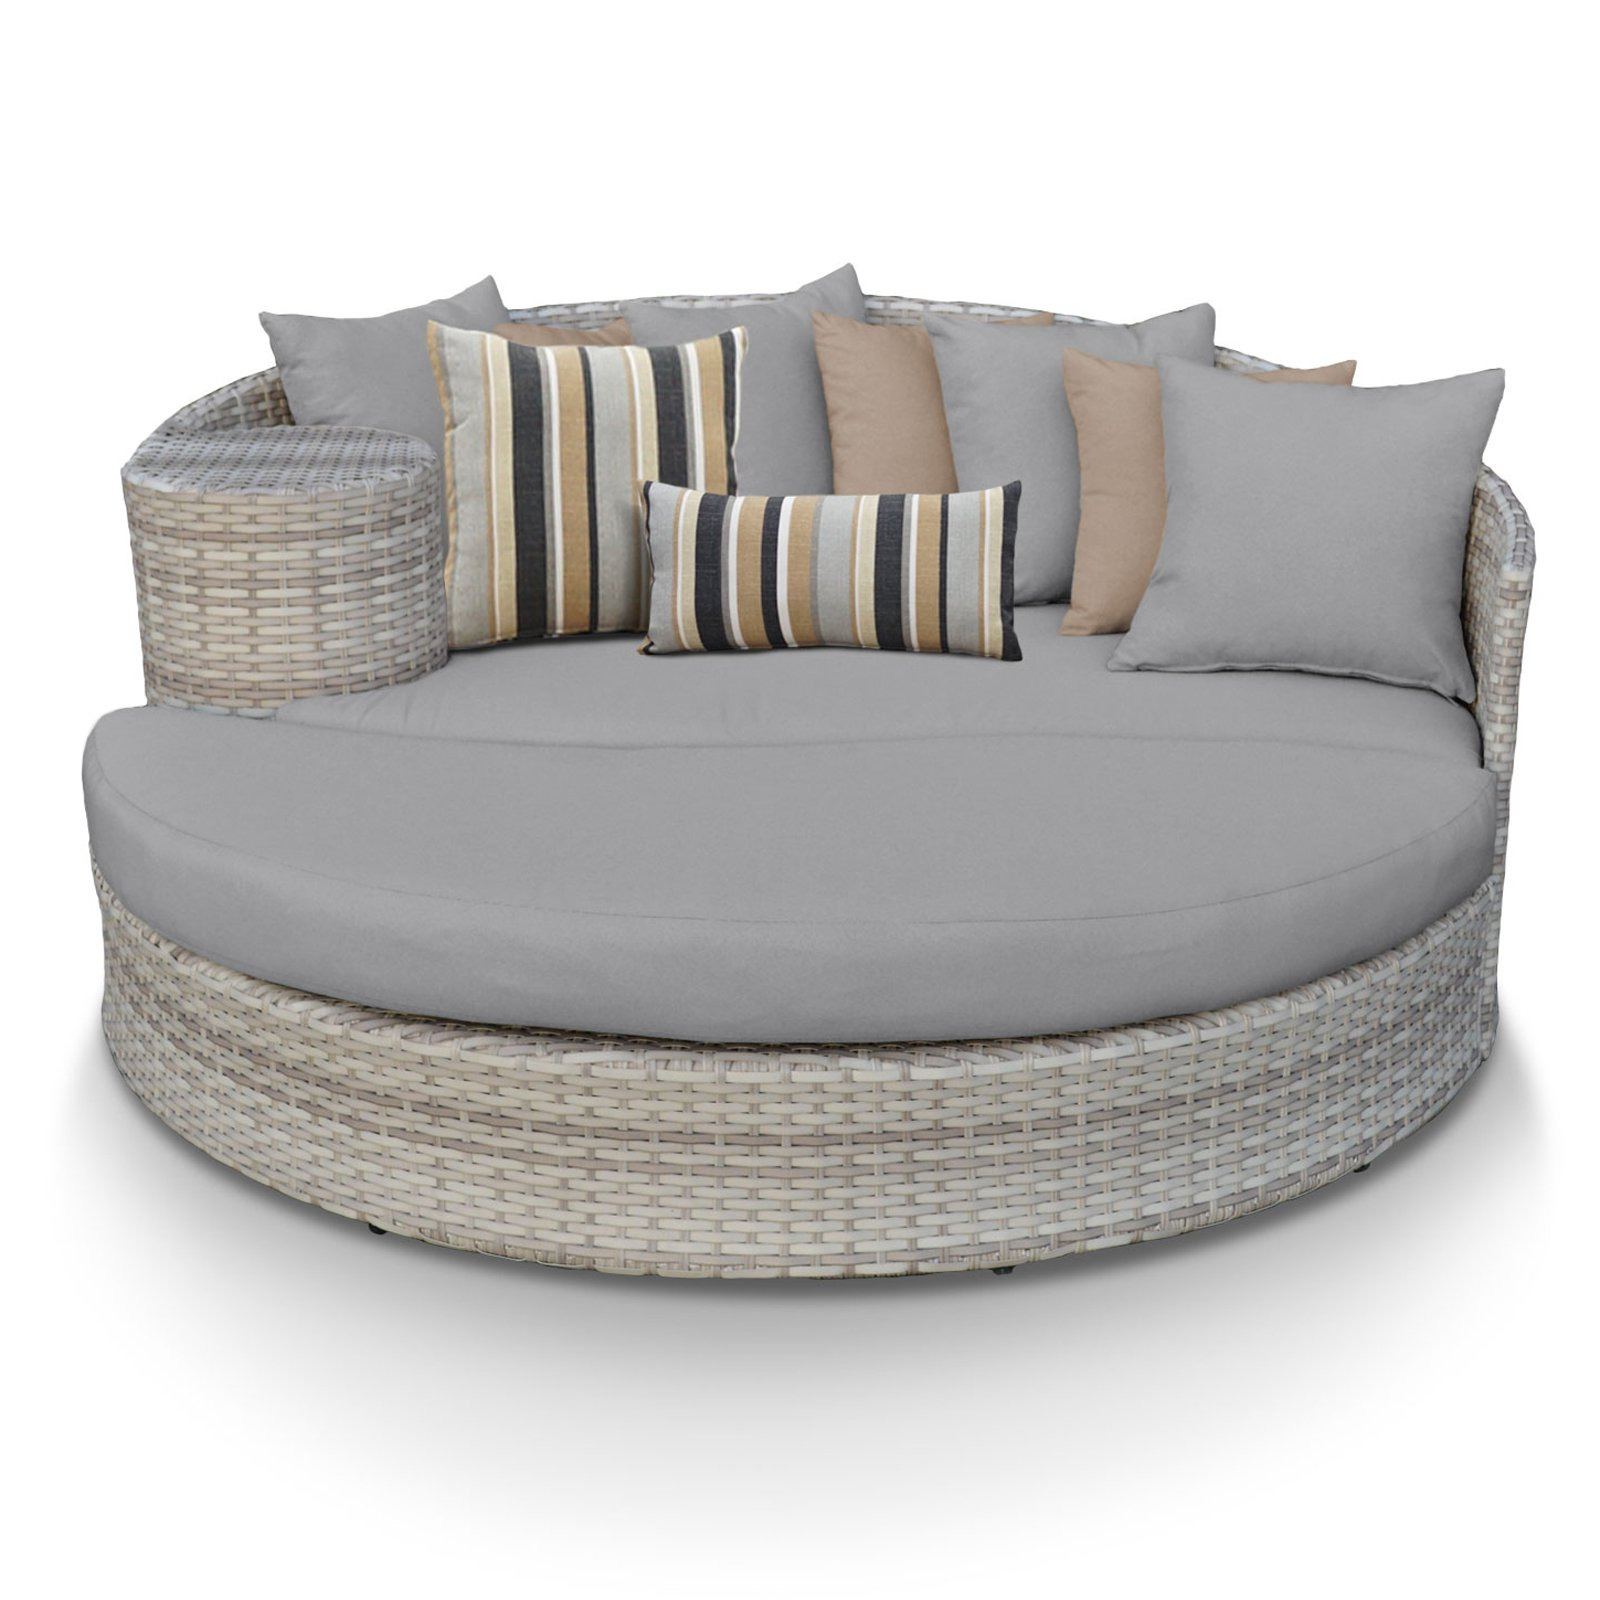 TK Classics Fairmont All-Weather Wicker Outdoor Sun Bed